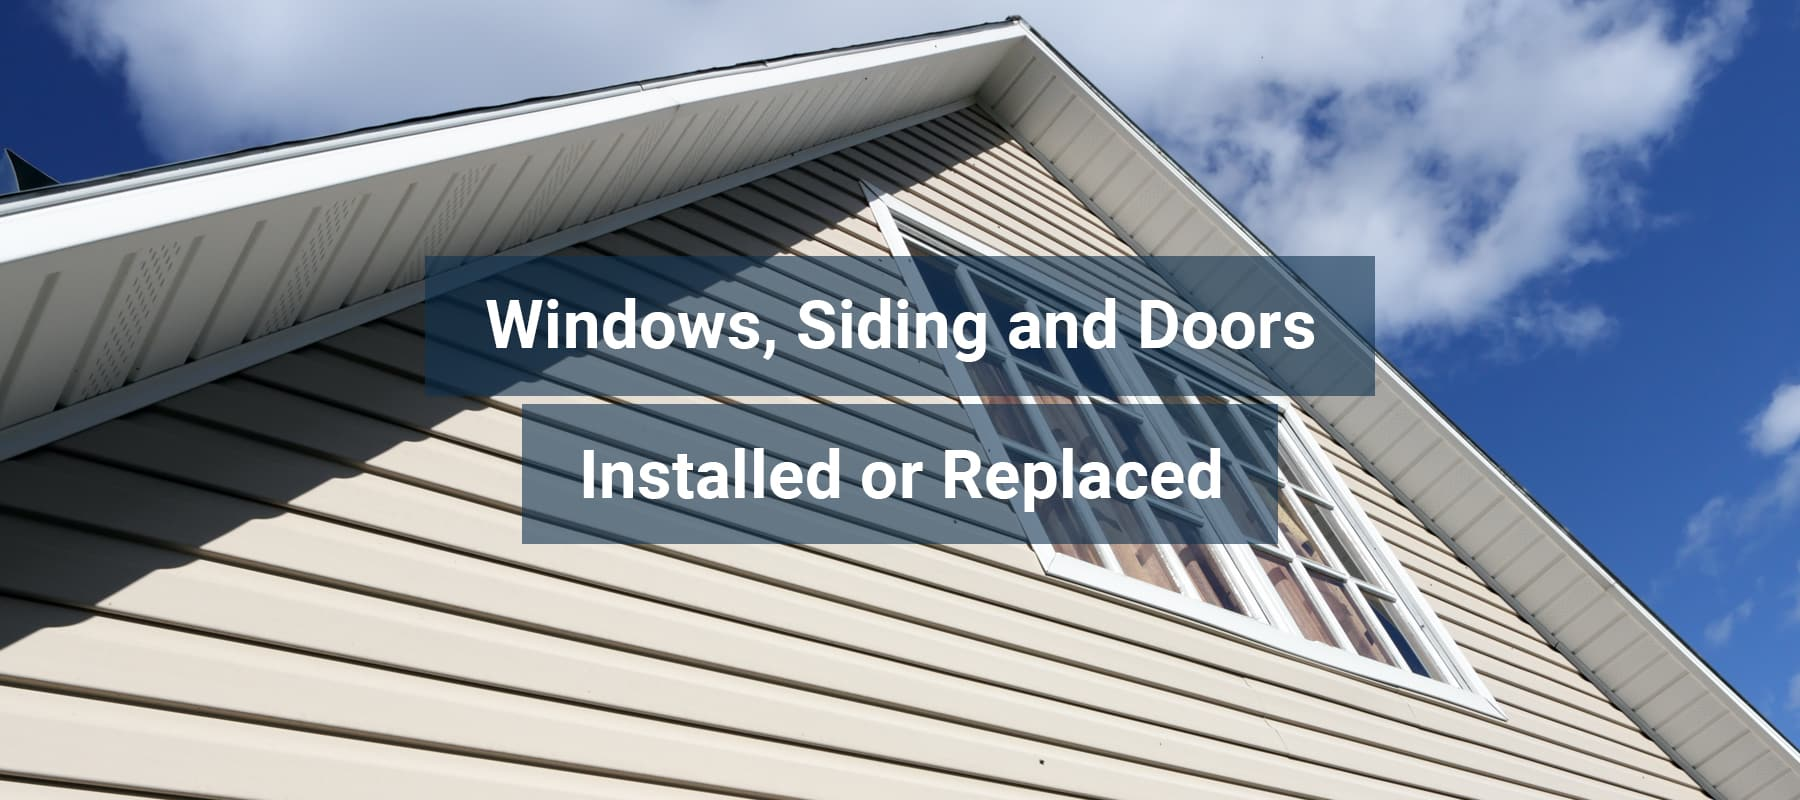 Windows, Siding and Doors